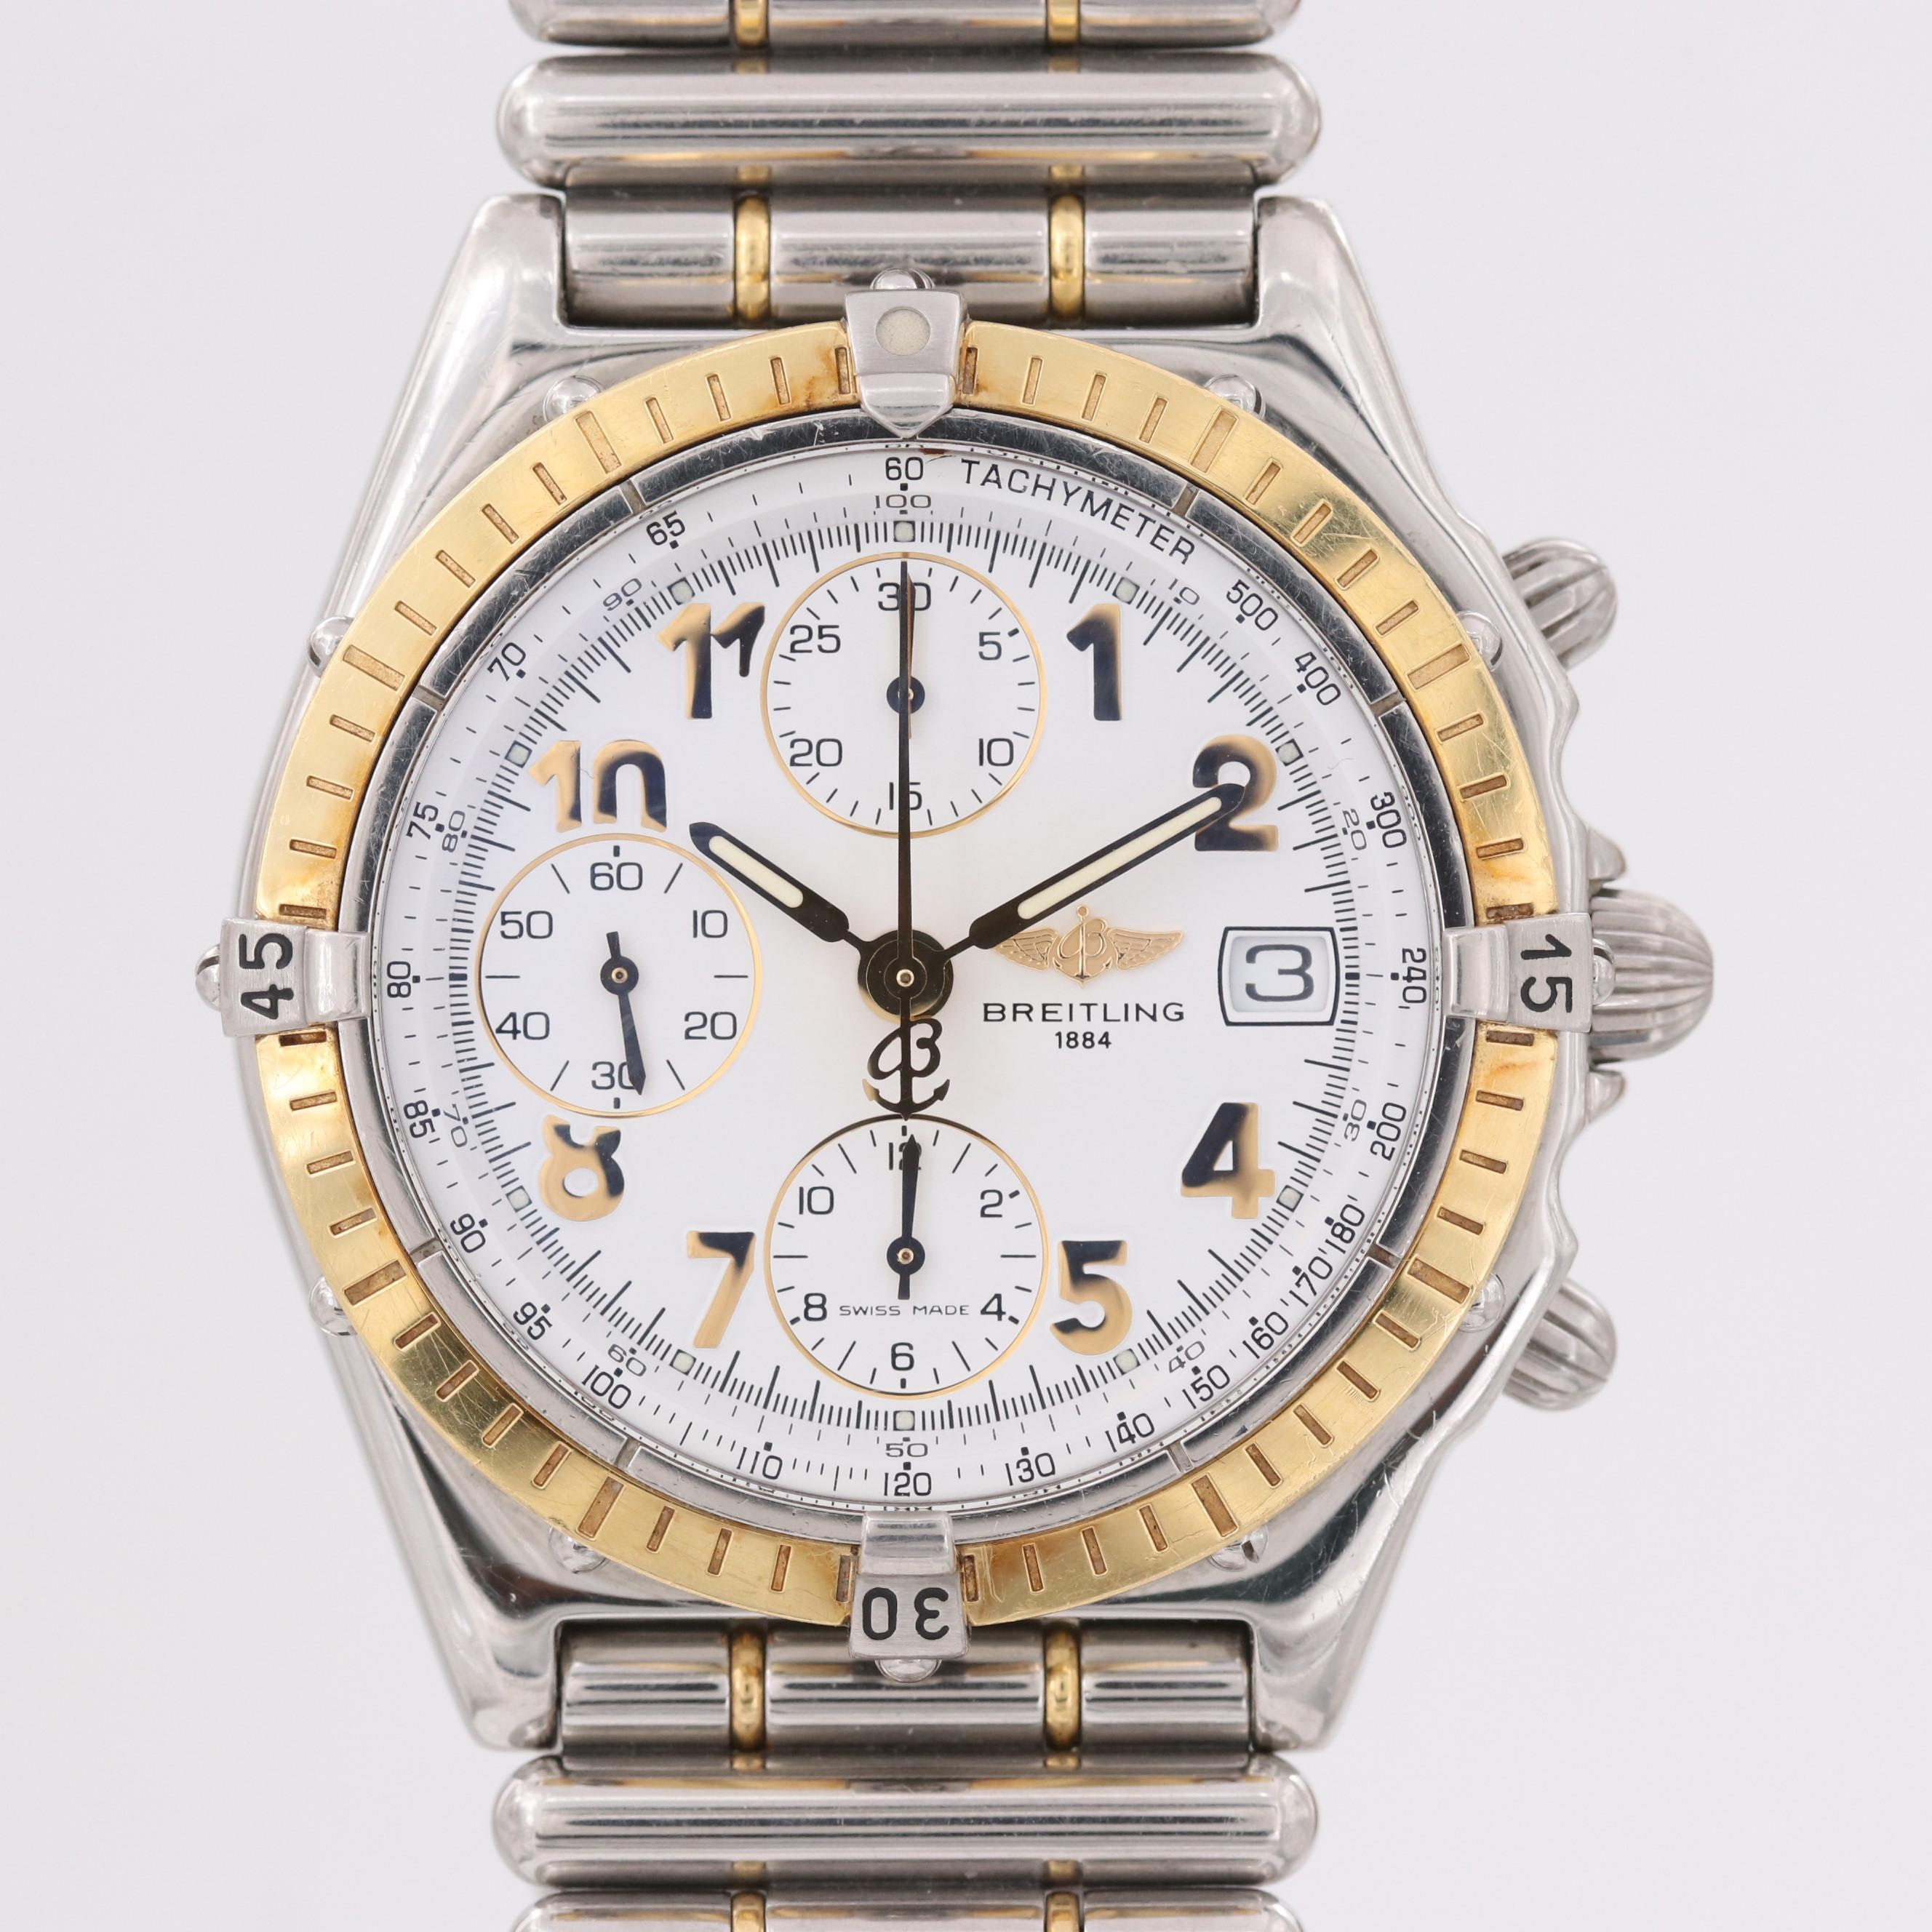 Vintage Breitling Chronomat Steel and 18K Gold Automatic Chronograph Wristwatch